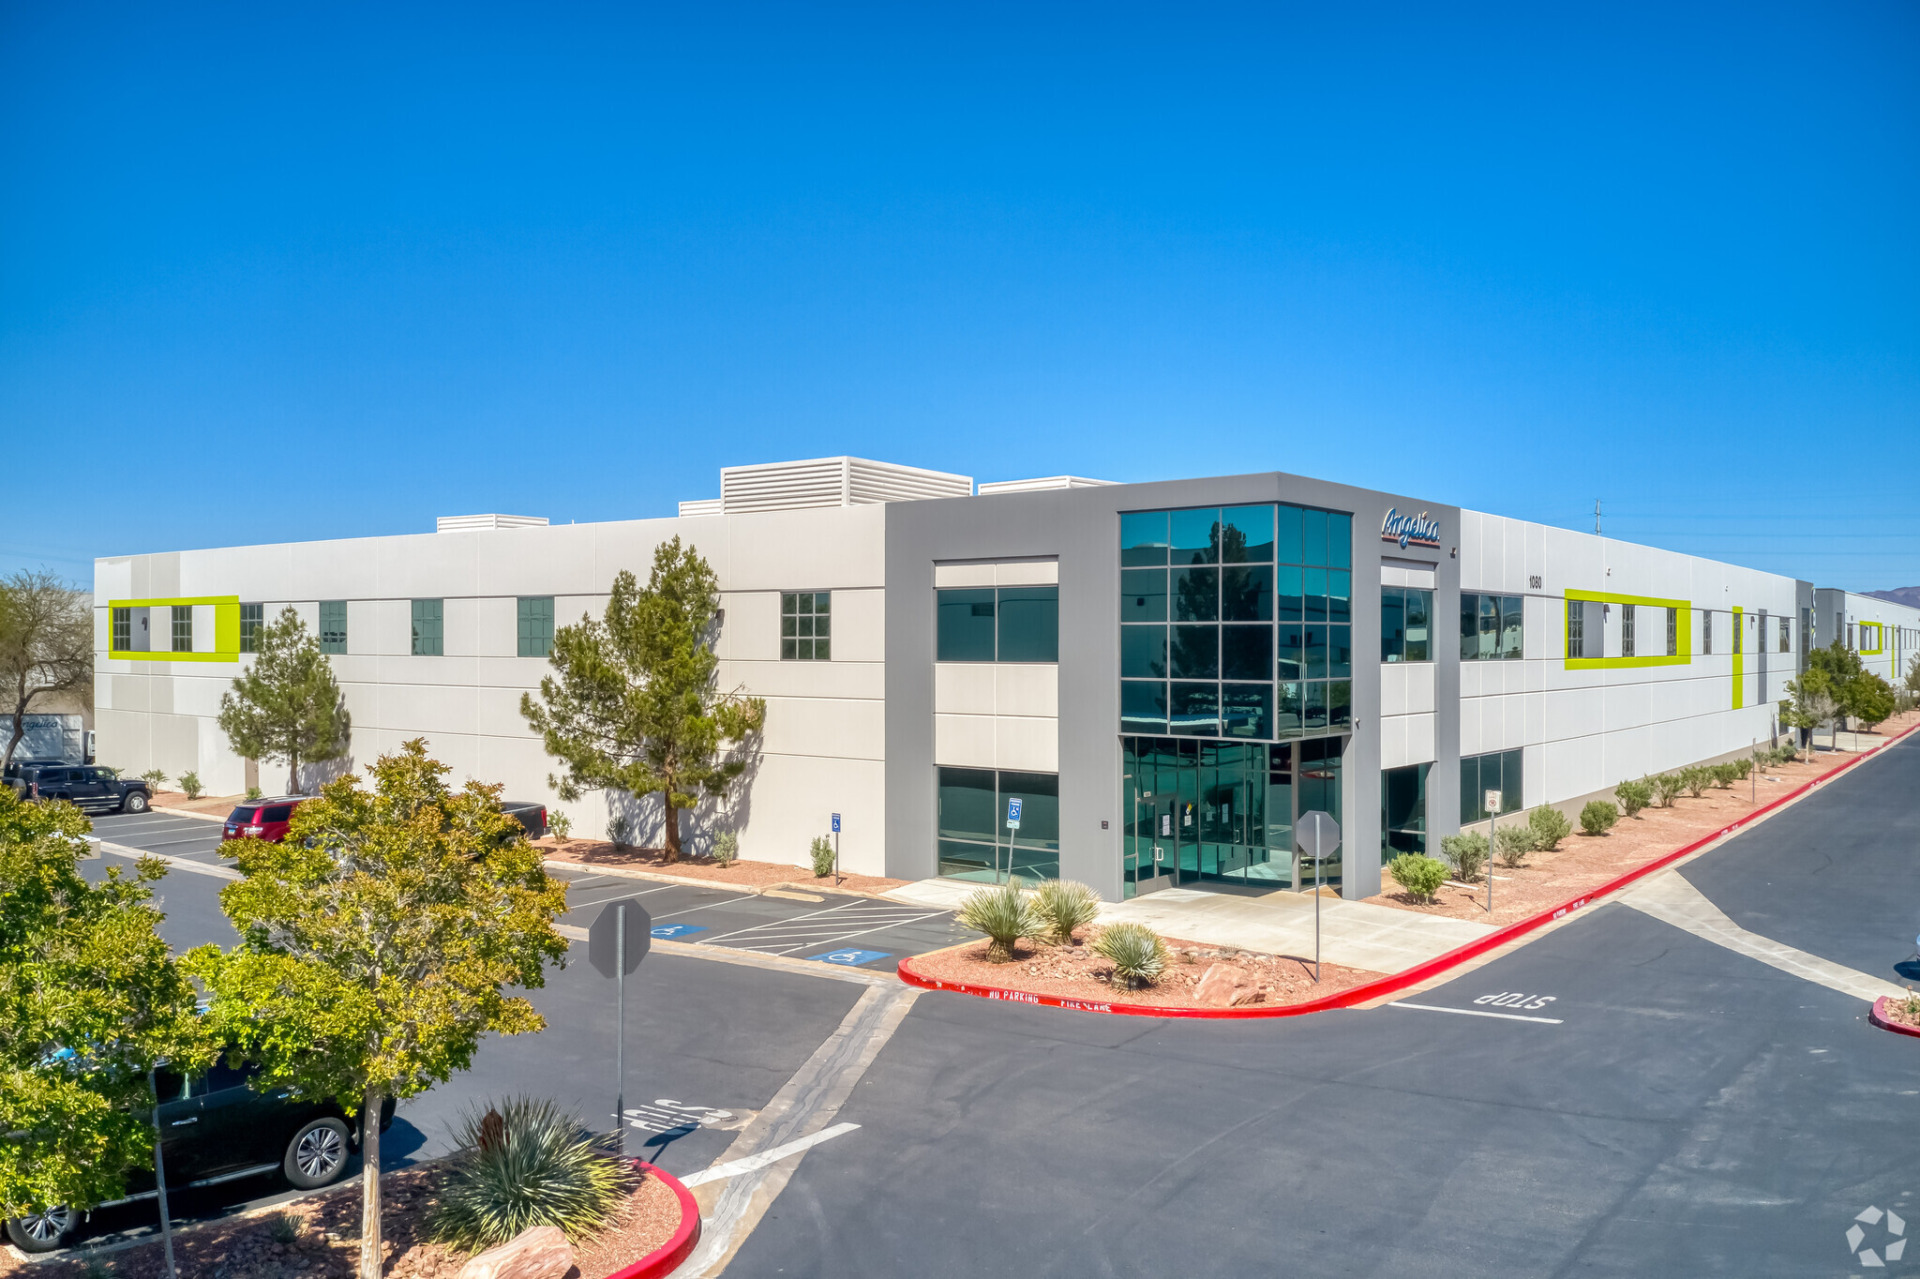 1080 MARY CREST RD. – HENDERSON DISTRIBUTION CENTER NORTH